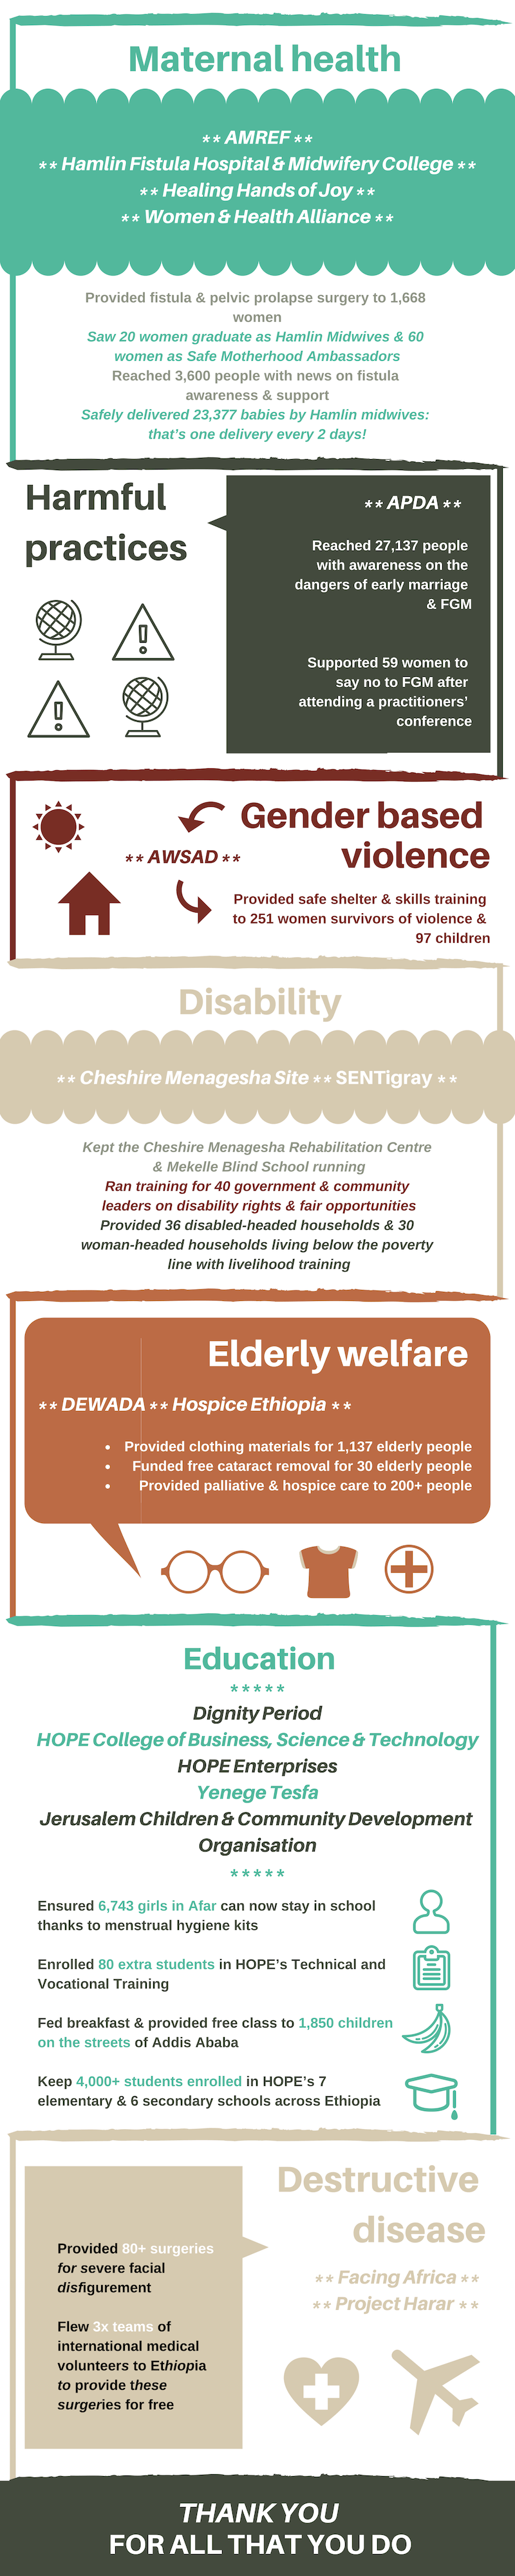 Infographic: the grassroots organisations in Ethiopia that you partner with and their highlights in 2018